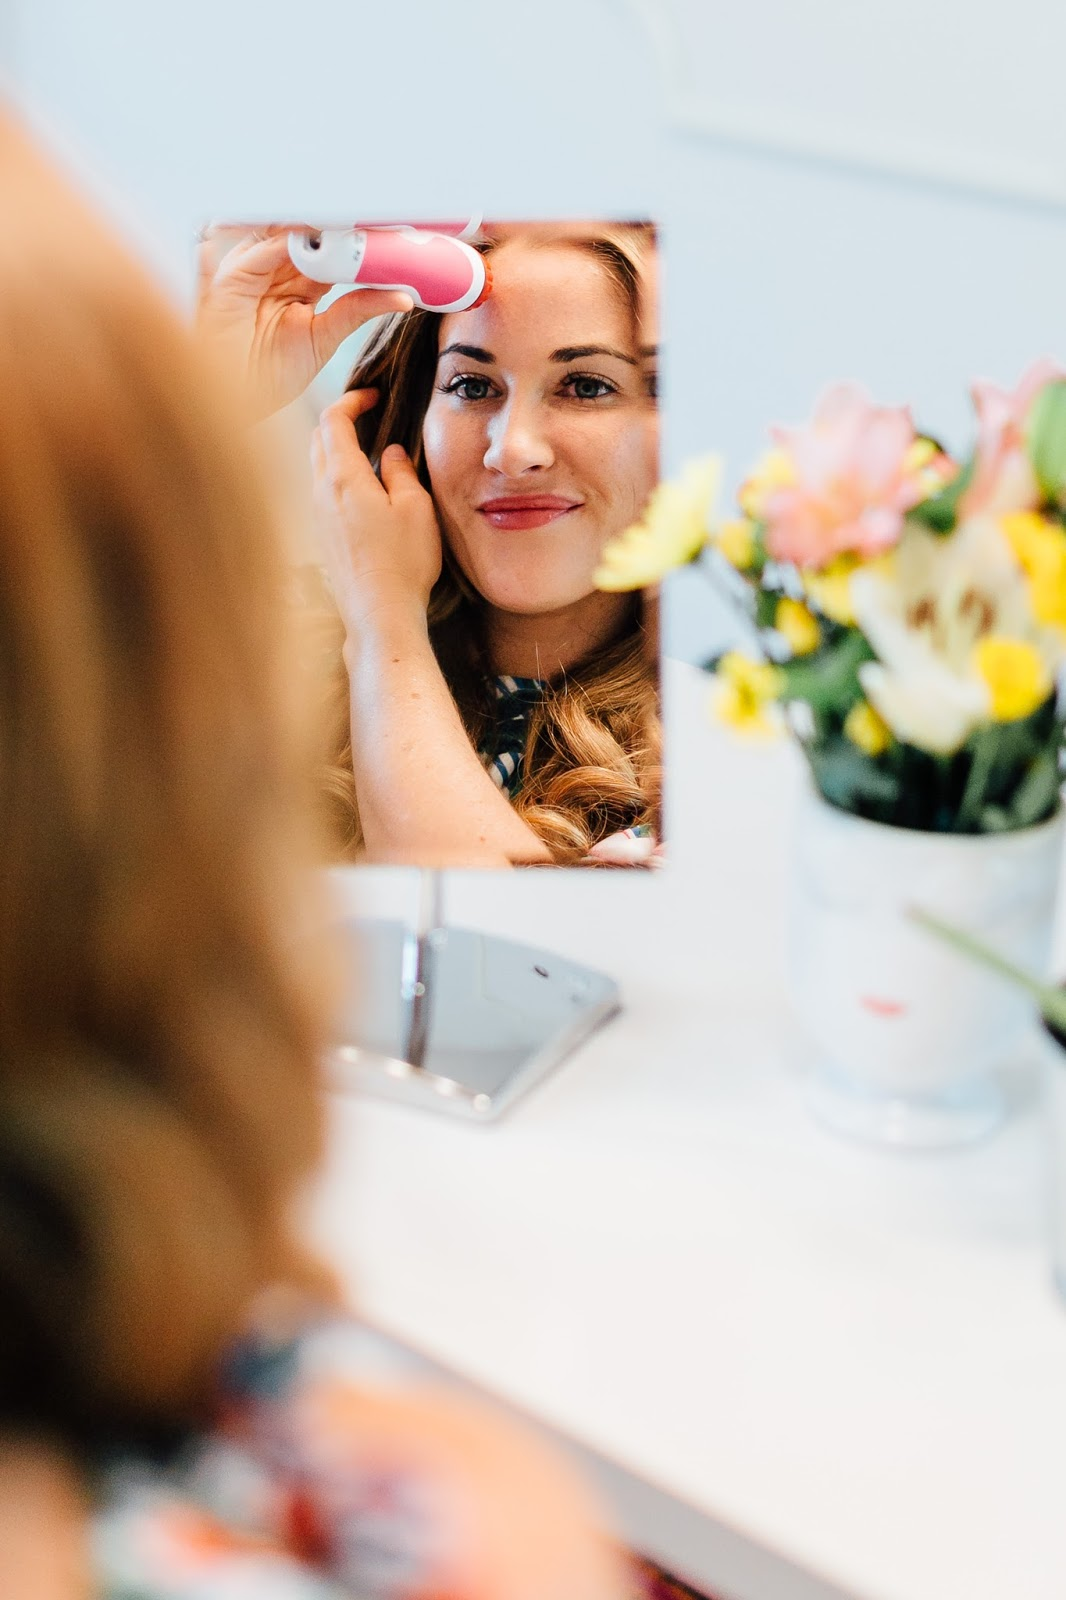 5 Benefits of Personal Microdermabrasion at Home by popular blogger Walking in Memphis in High Heels